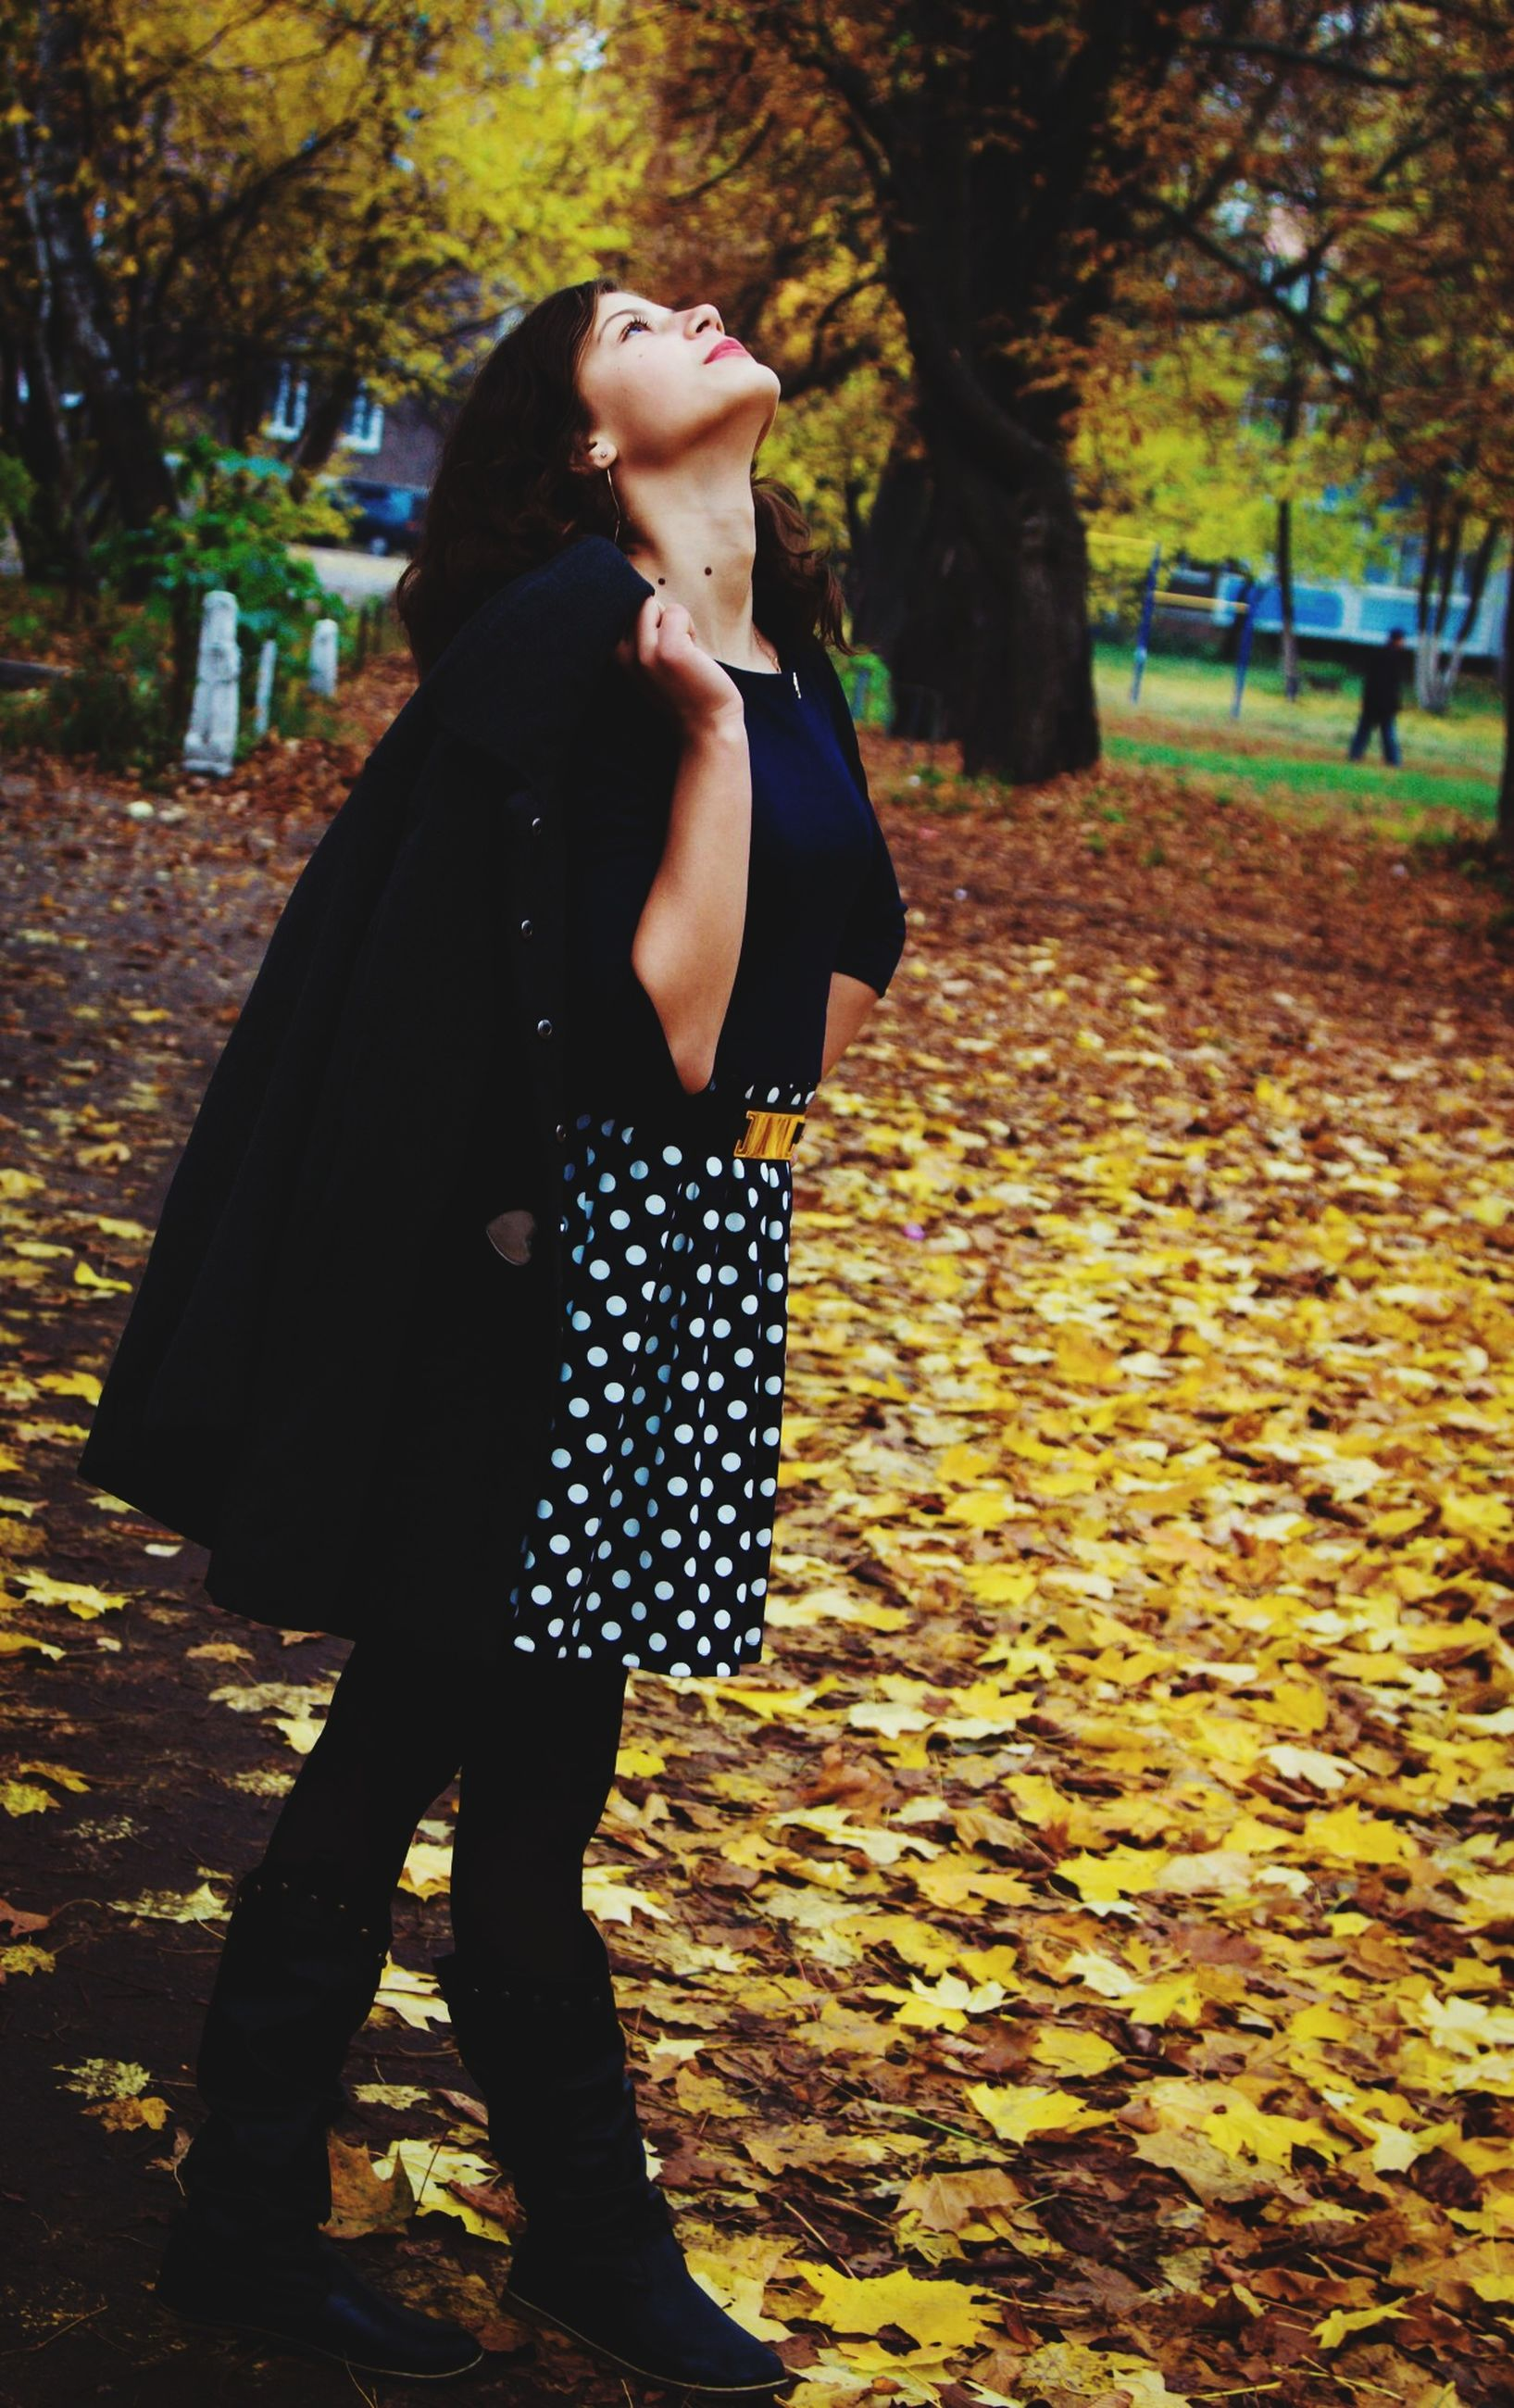 lifestyles, tree, casual clothing, leisure activity, young adult, standing, person, full length, young women, front view, focus on foreground, park - man made space, holding, outdoors, autumn, day, street, side view